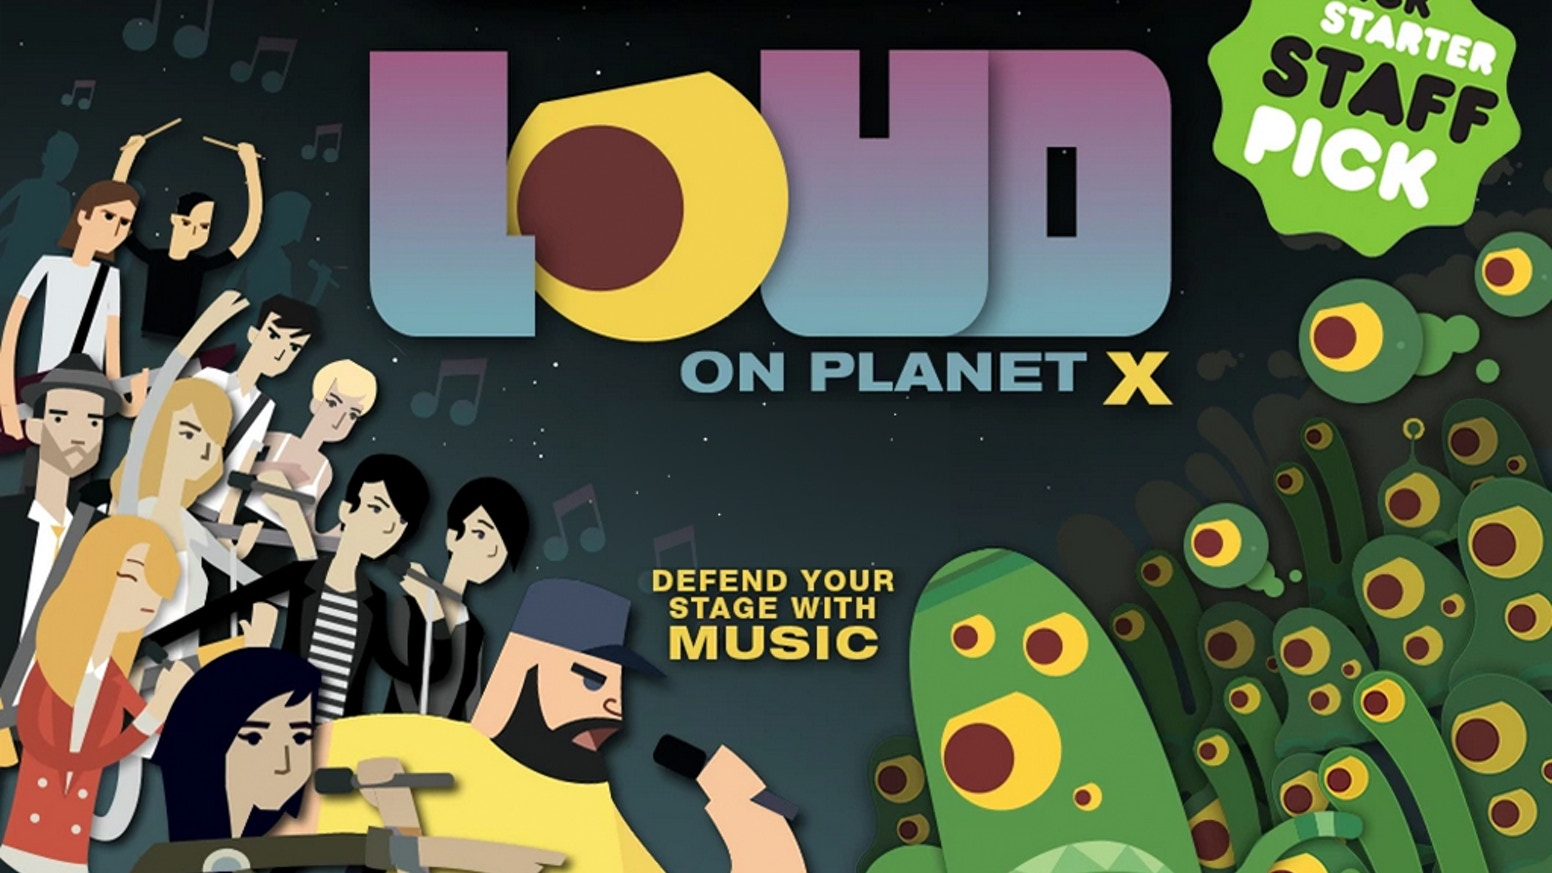 Defend your stage with music in this new INDIE MUSIC GAME featuring Tegan and Sara, CHVRCHES, Lights, Metric, METZ, F*cked Up, HEALTH, Purity Ring, Little Dragon, Austra, & more!  AVAILABLE NOW on PS4, Steam, iOS & Android!